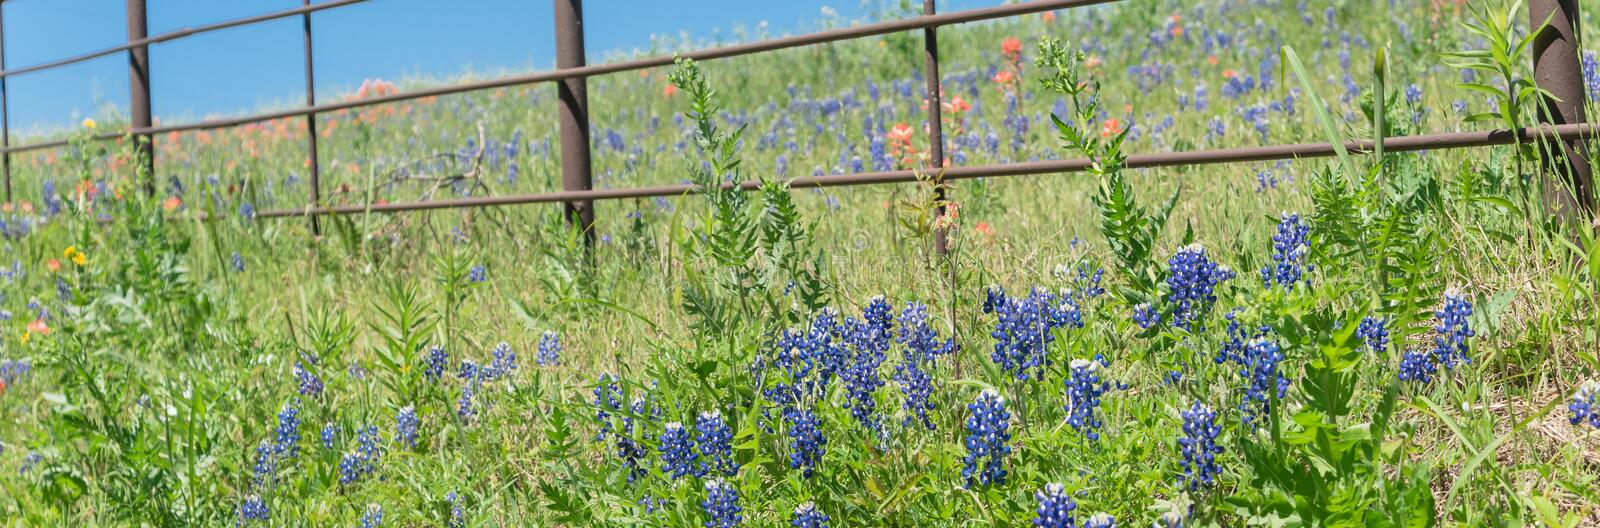 Panoramiczne blossom bluebonnet fields with rustic fence in country place of Texas, America fotografia stock